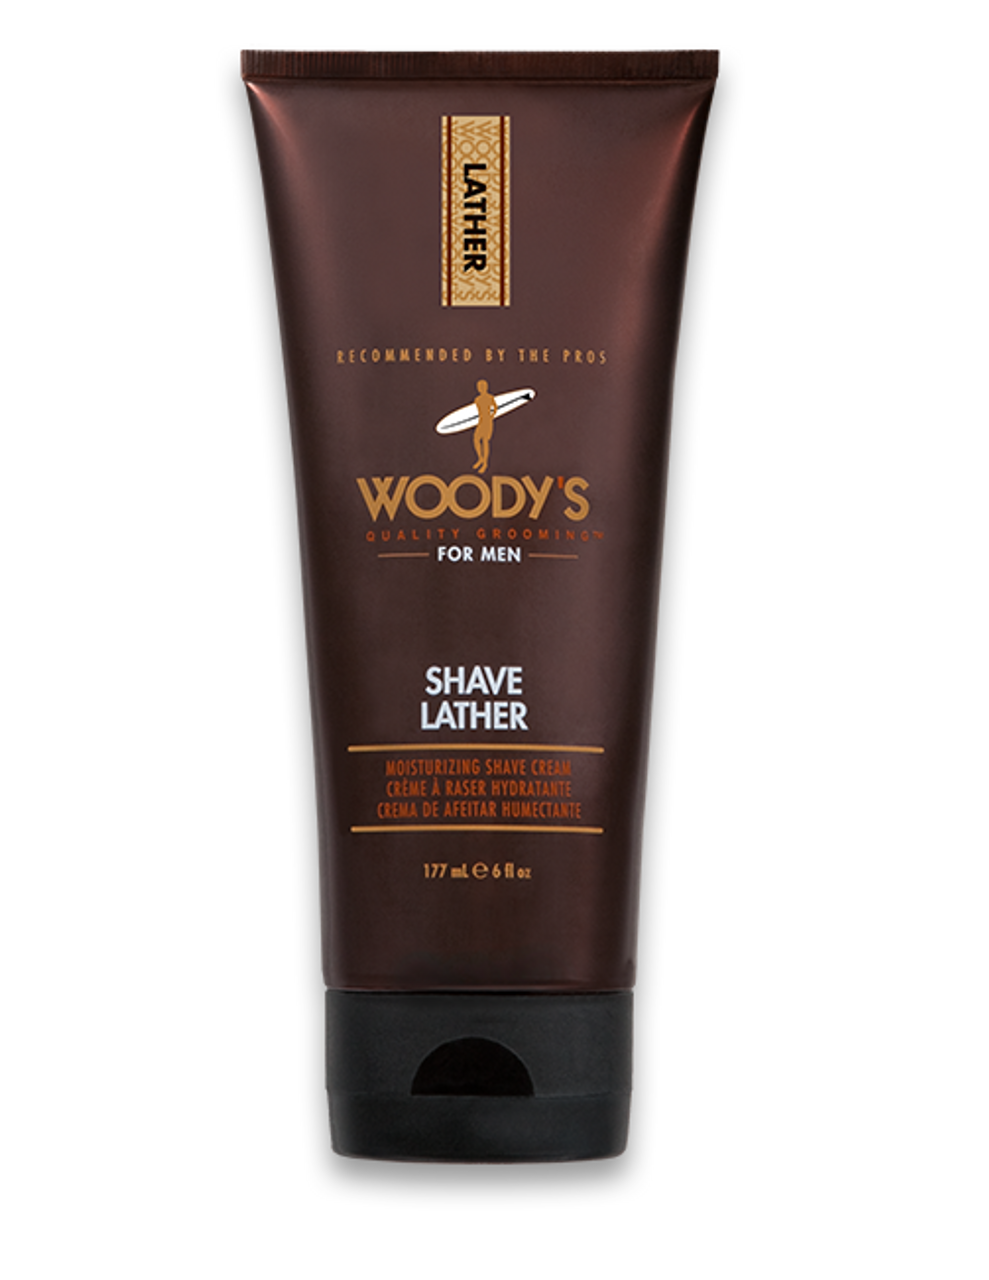 Woody's Shave Lather